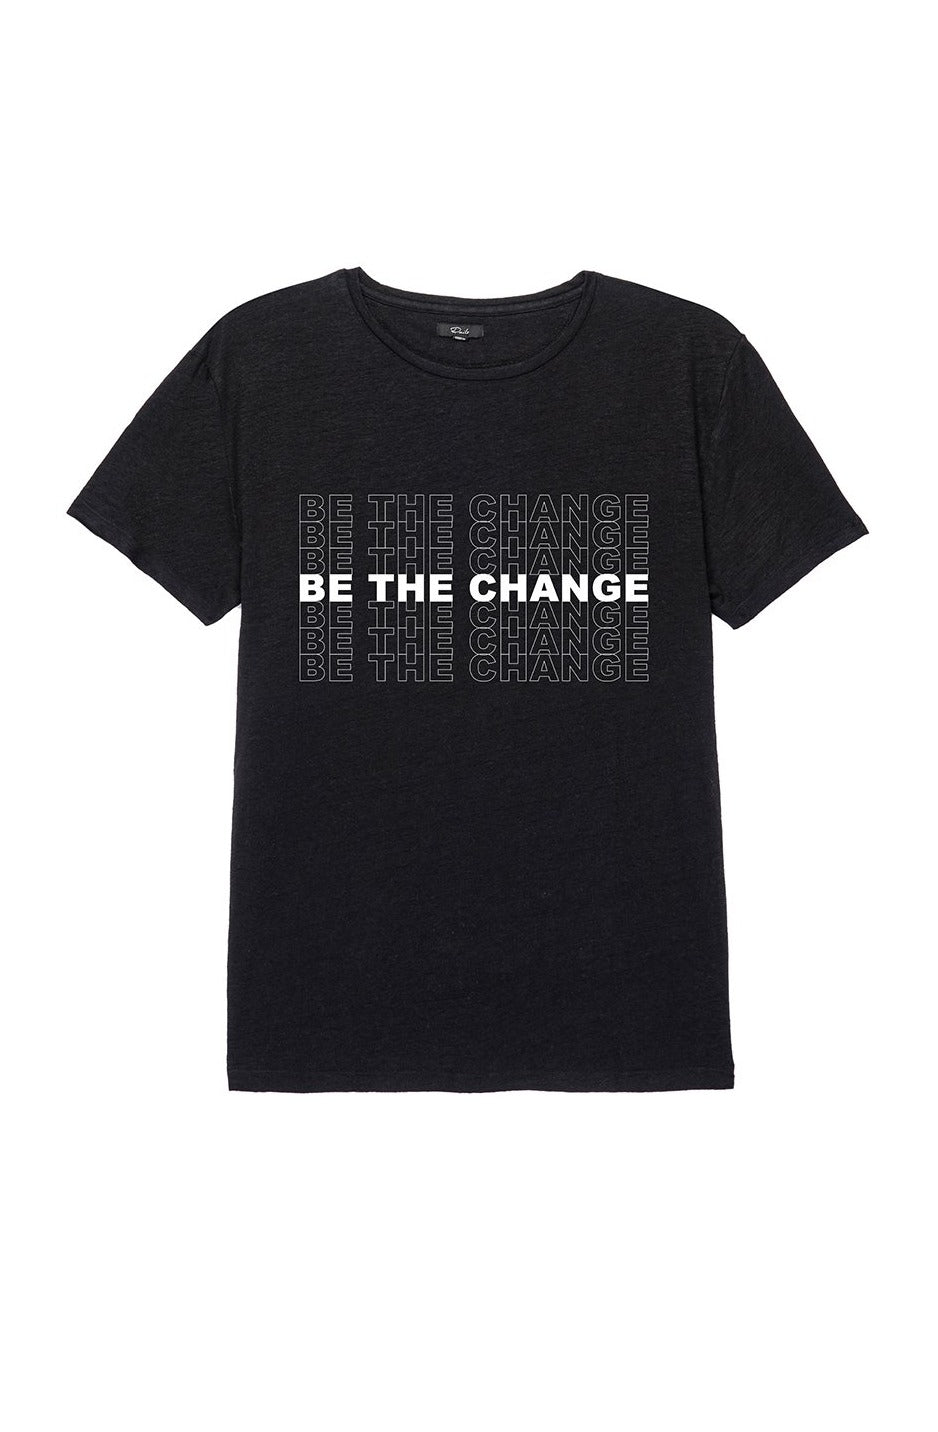 WOMEN'S BE THE CHANGE TEE - BLACK